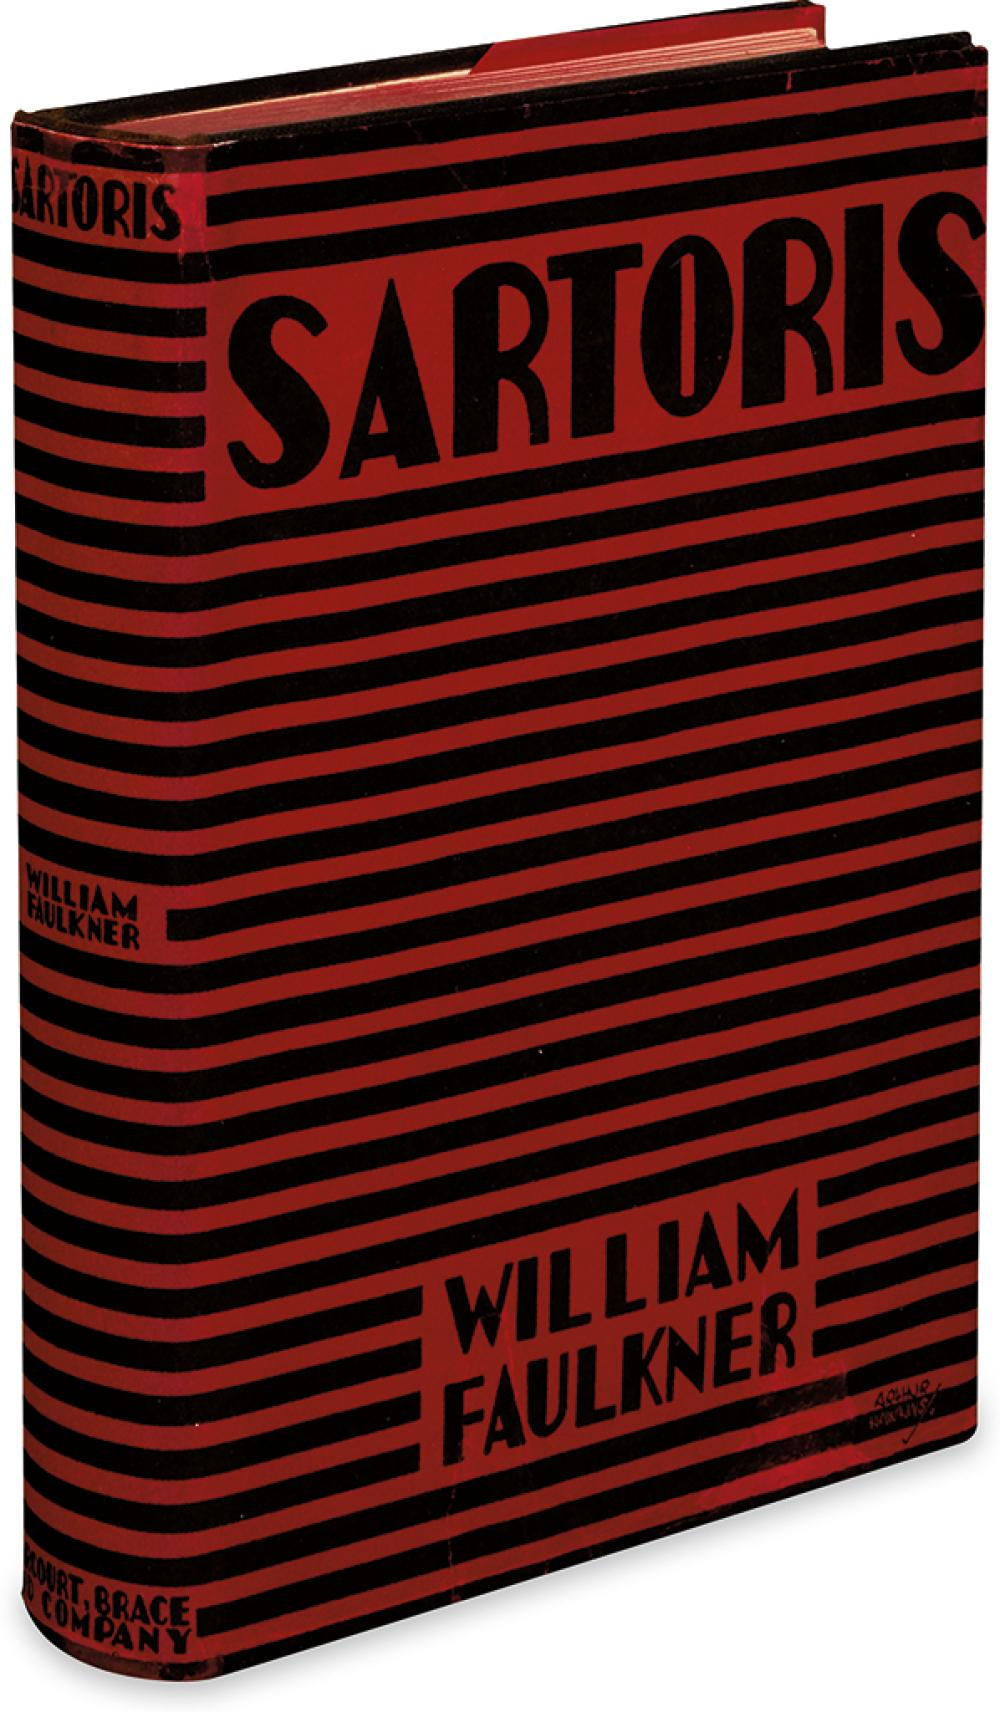 FAULKNER, WILLIAM. Sartoris.